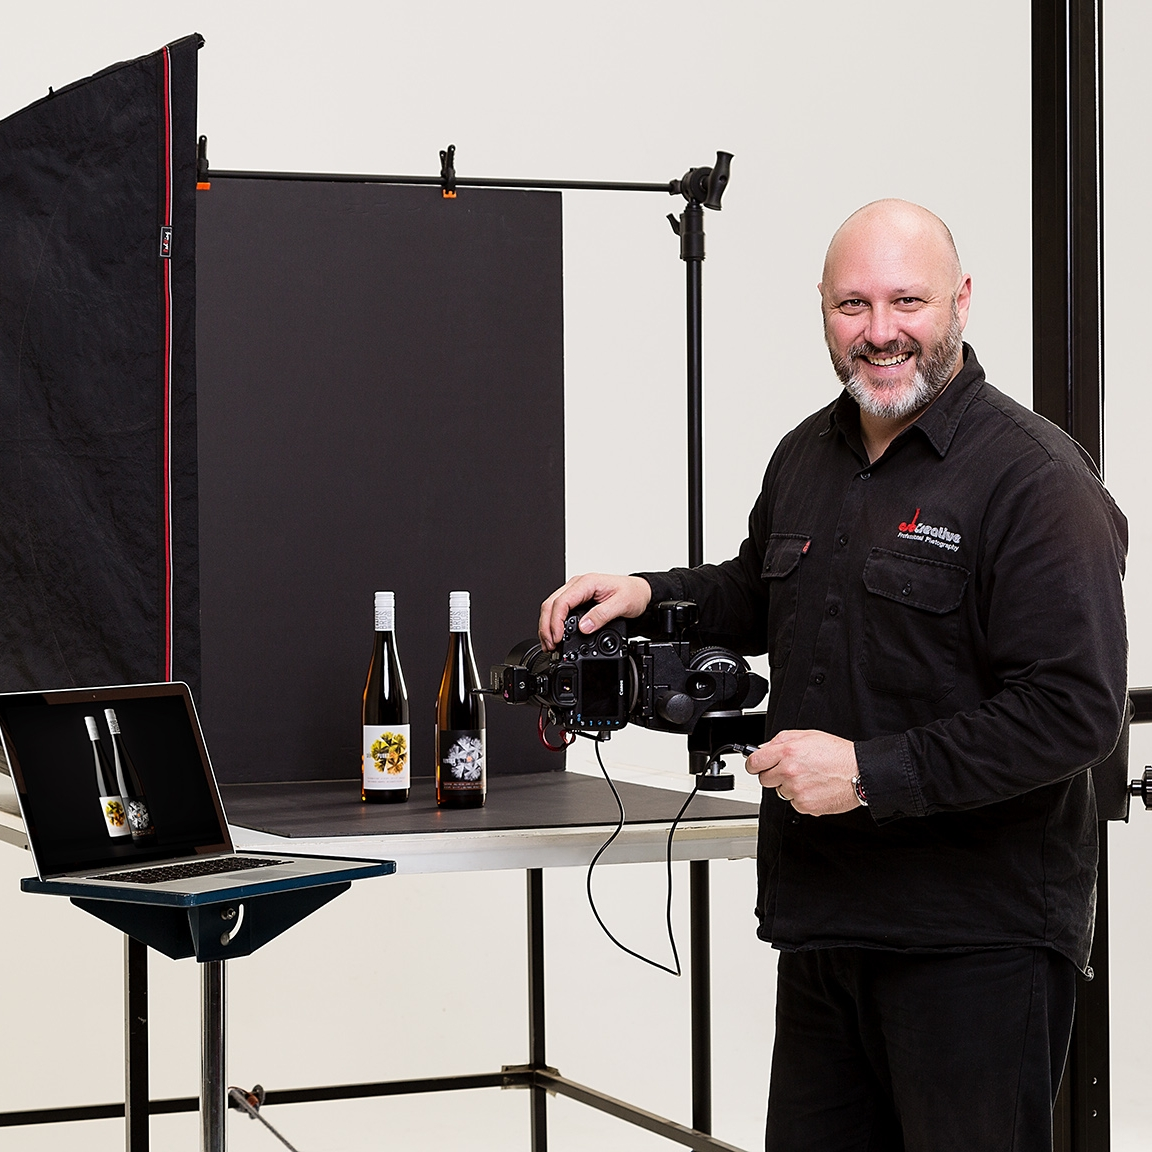 Owner and Principal Photographer - Andrew Beveridge